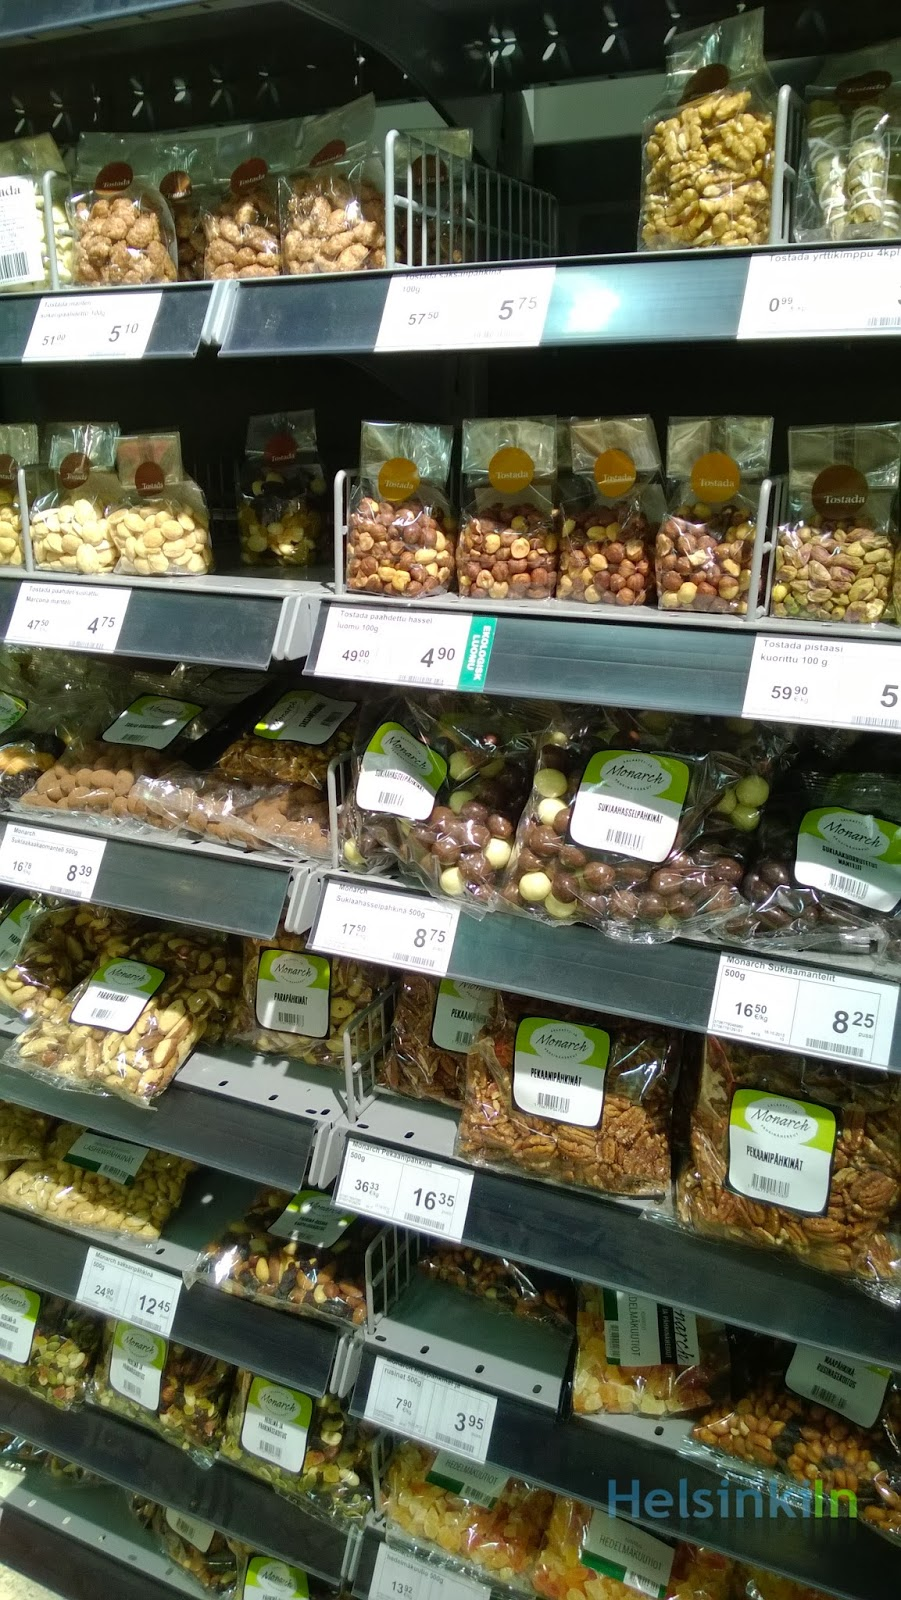 nut shelf in Finnish supermarket